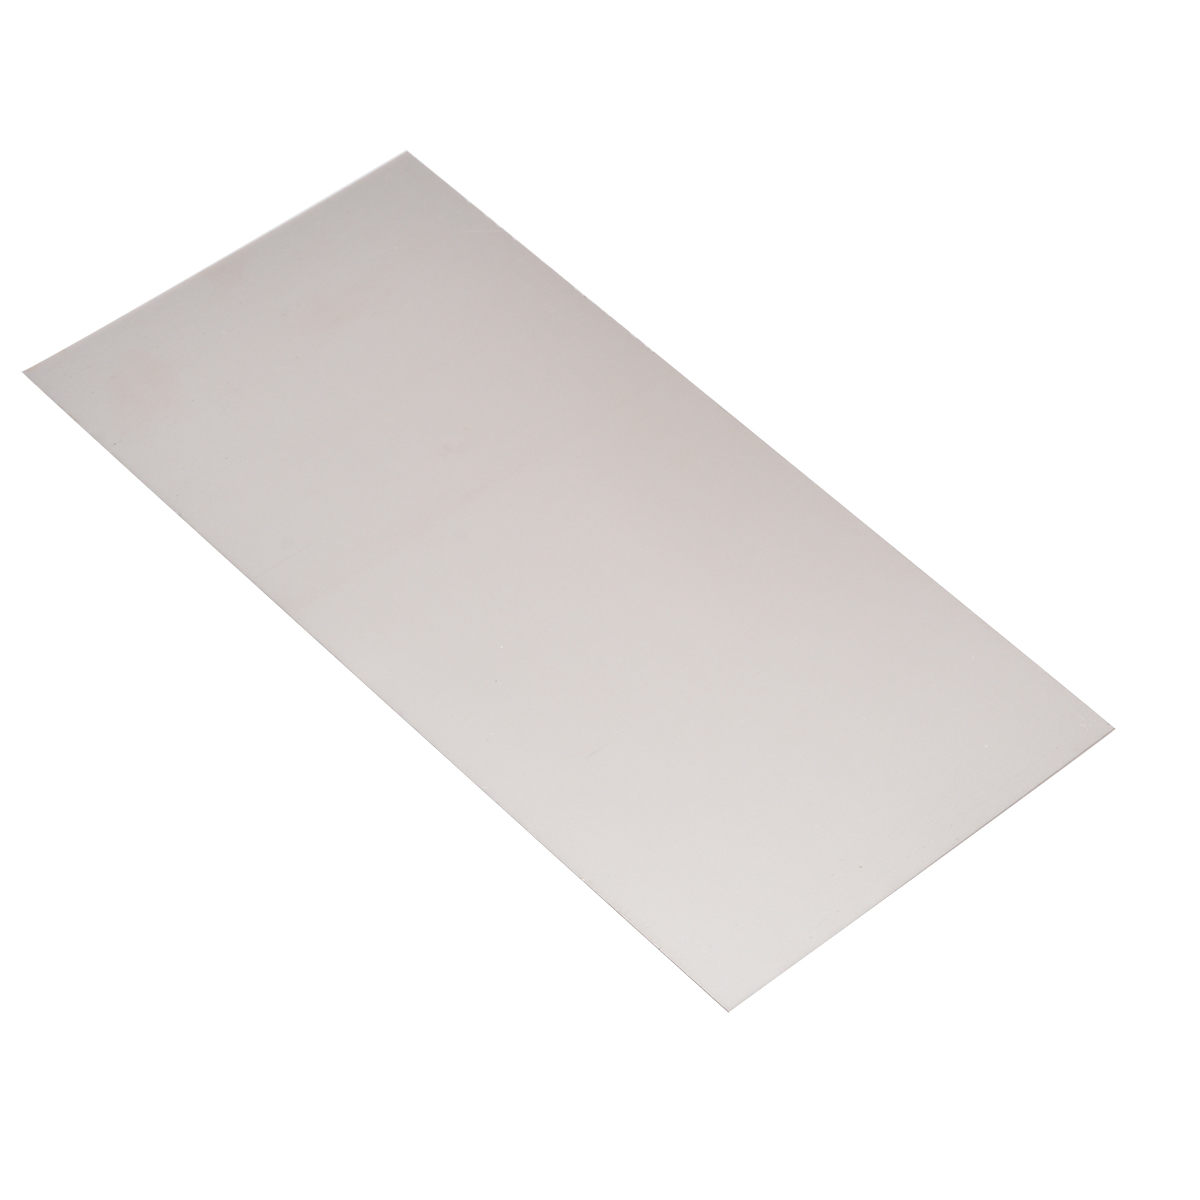 1Pcs High Purity Thin Sheet Nickel Plate Foil 0.3x100x200mm Pure Nickel Foil Plate With Corrosion Resistance For Electroplating